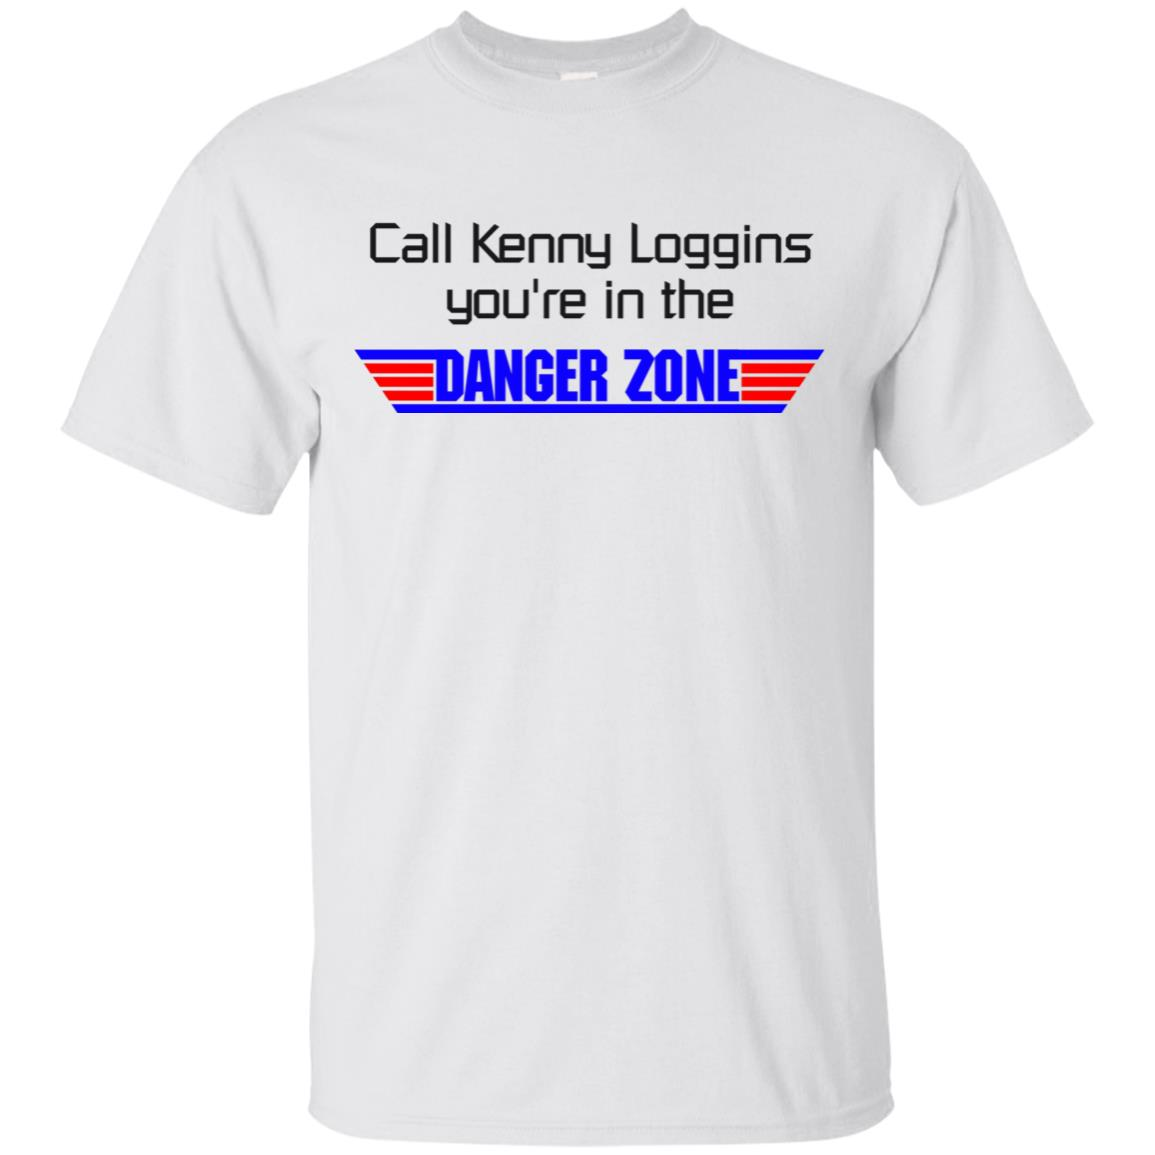 Call Kenny Loggins, You're in the Danger Zone Unisex Short Sleeve